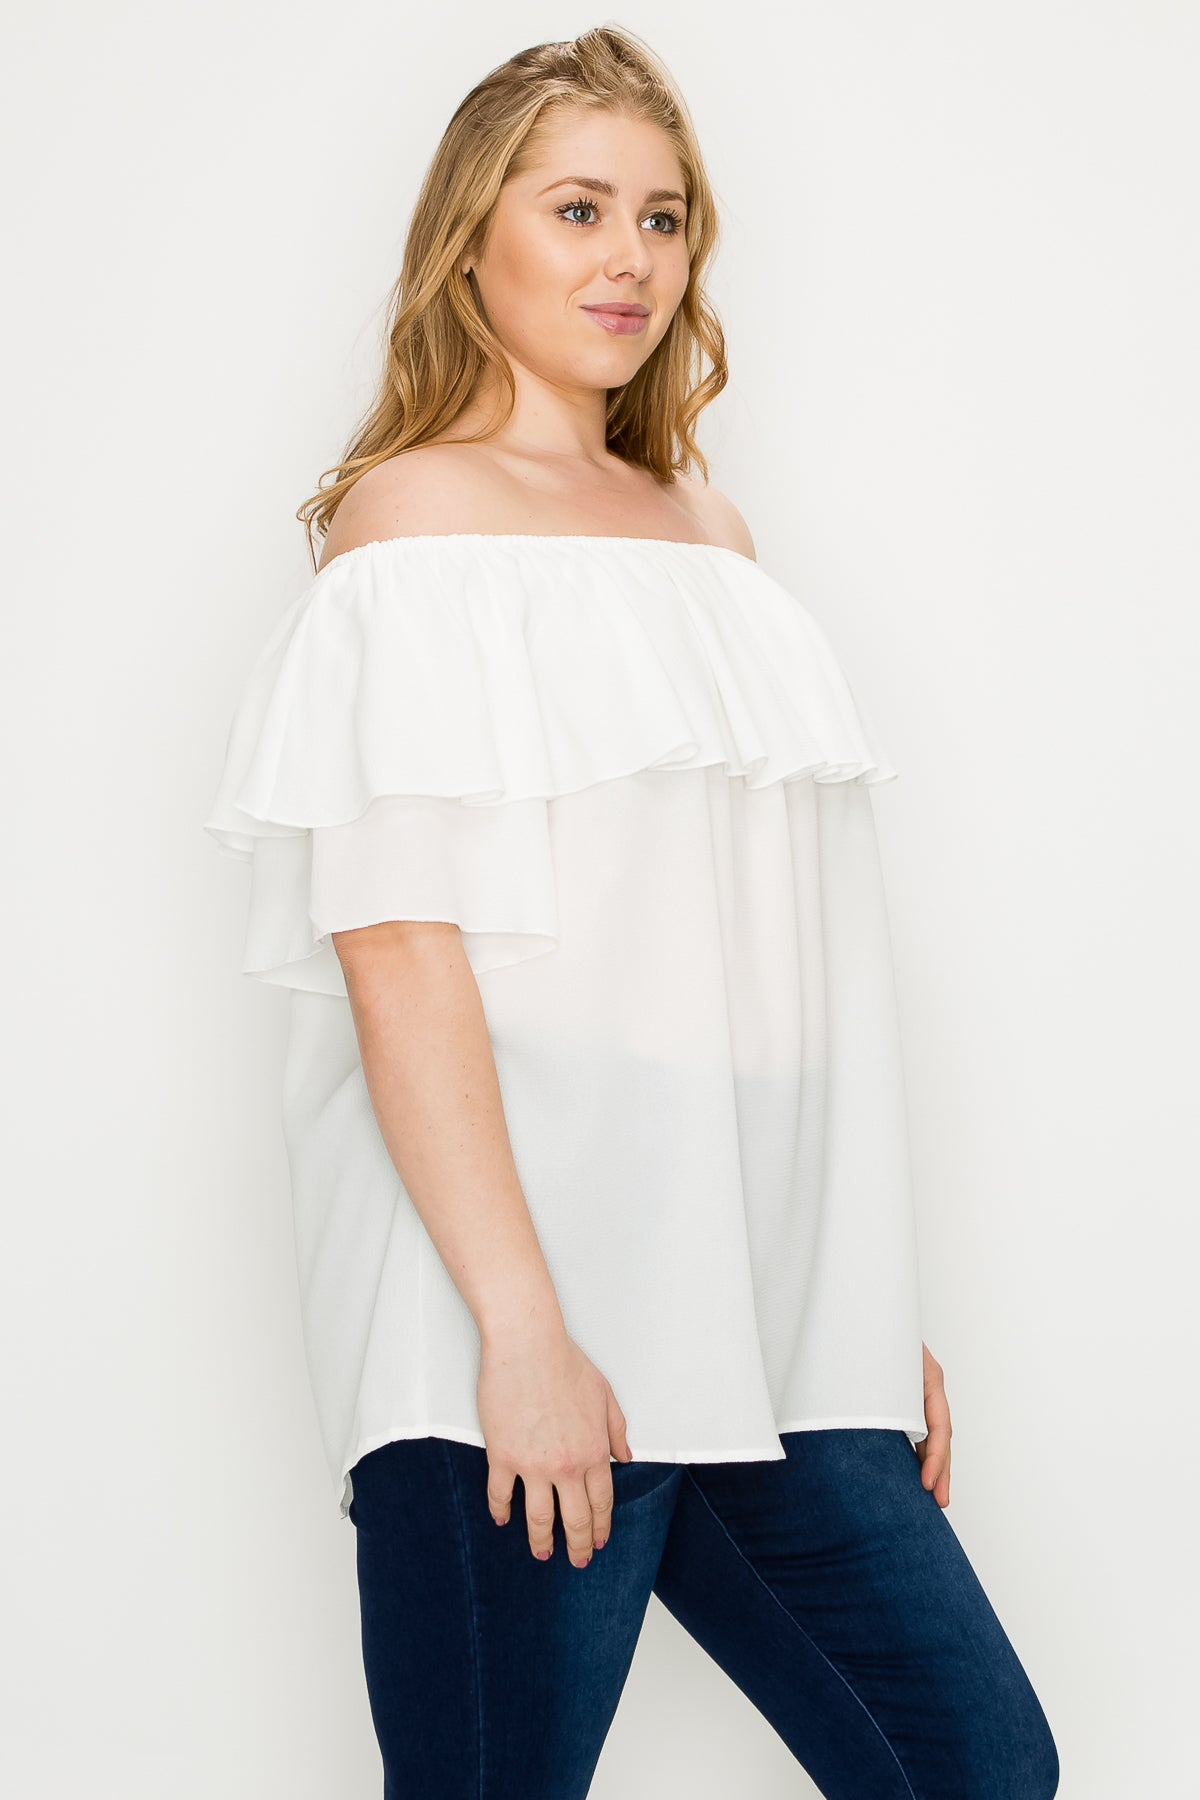 Women's Plus Size Off The Shoulder Tops Bell Ruffle Sleeve Koshibo